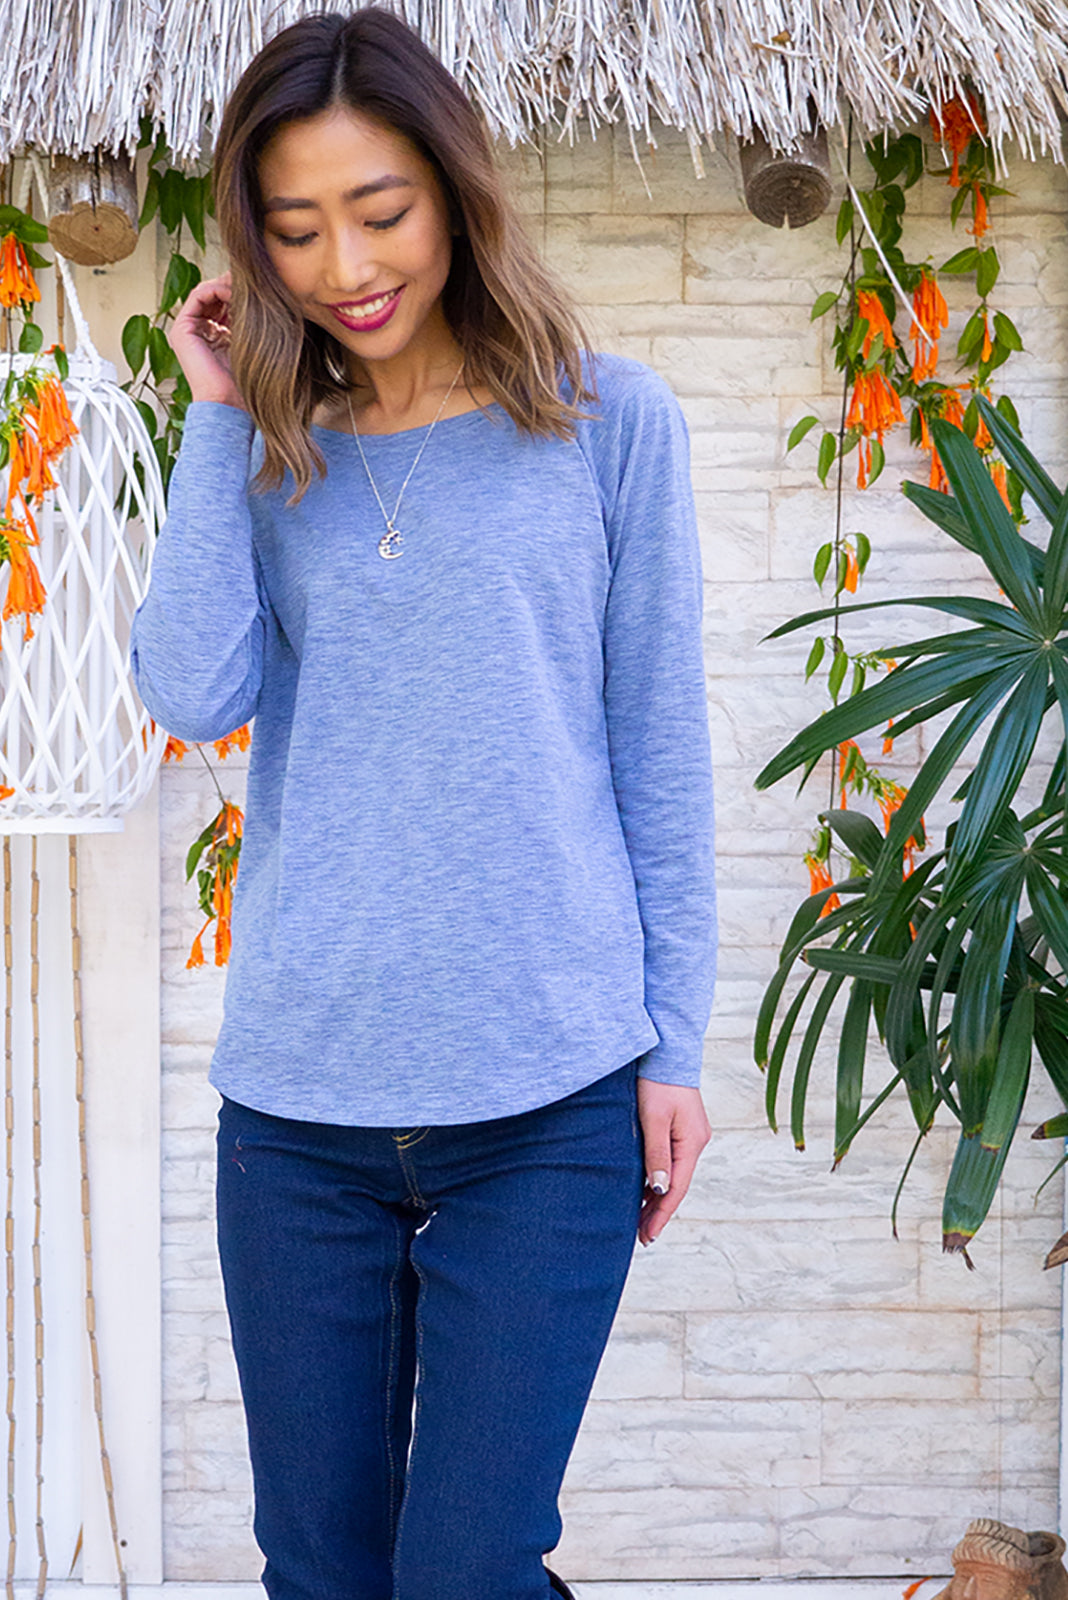 Pegasus Blue Tee is a classic blue tee shirt featuring knit 60% Cotton / 40% Polyester, long sleeve, curved hem.